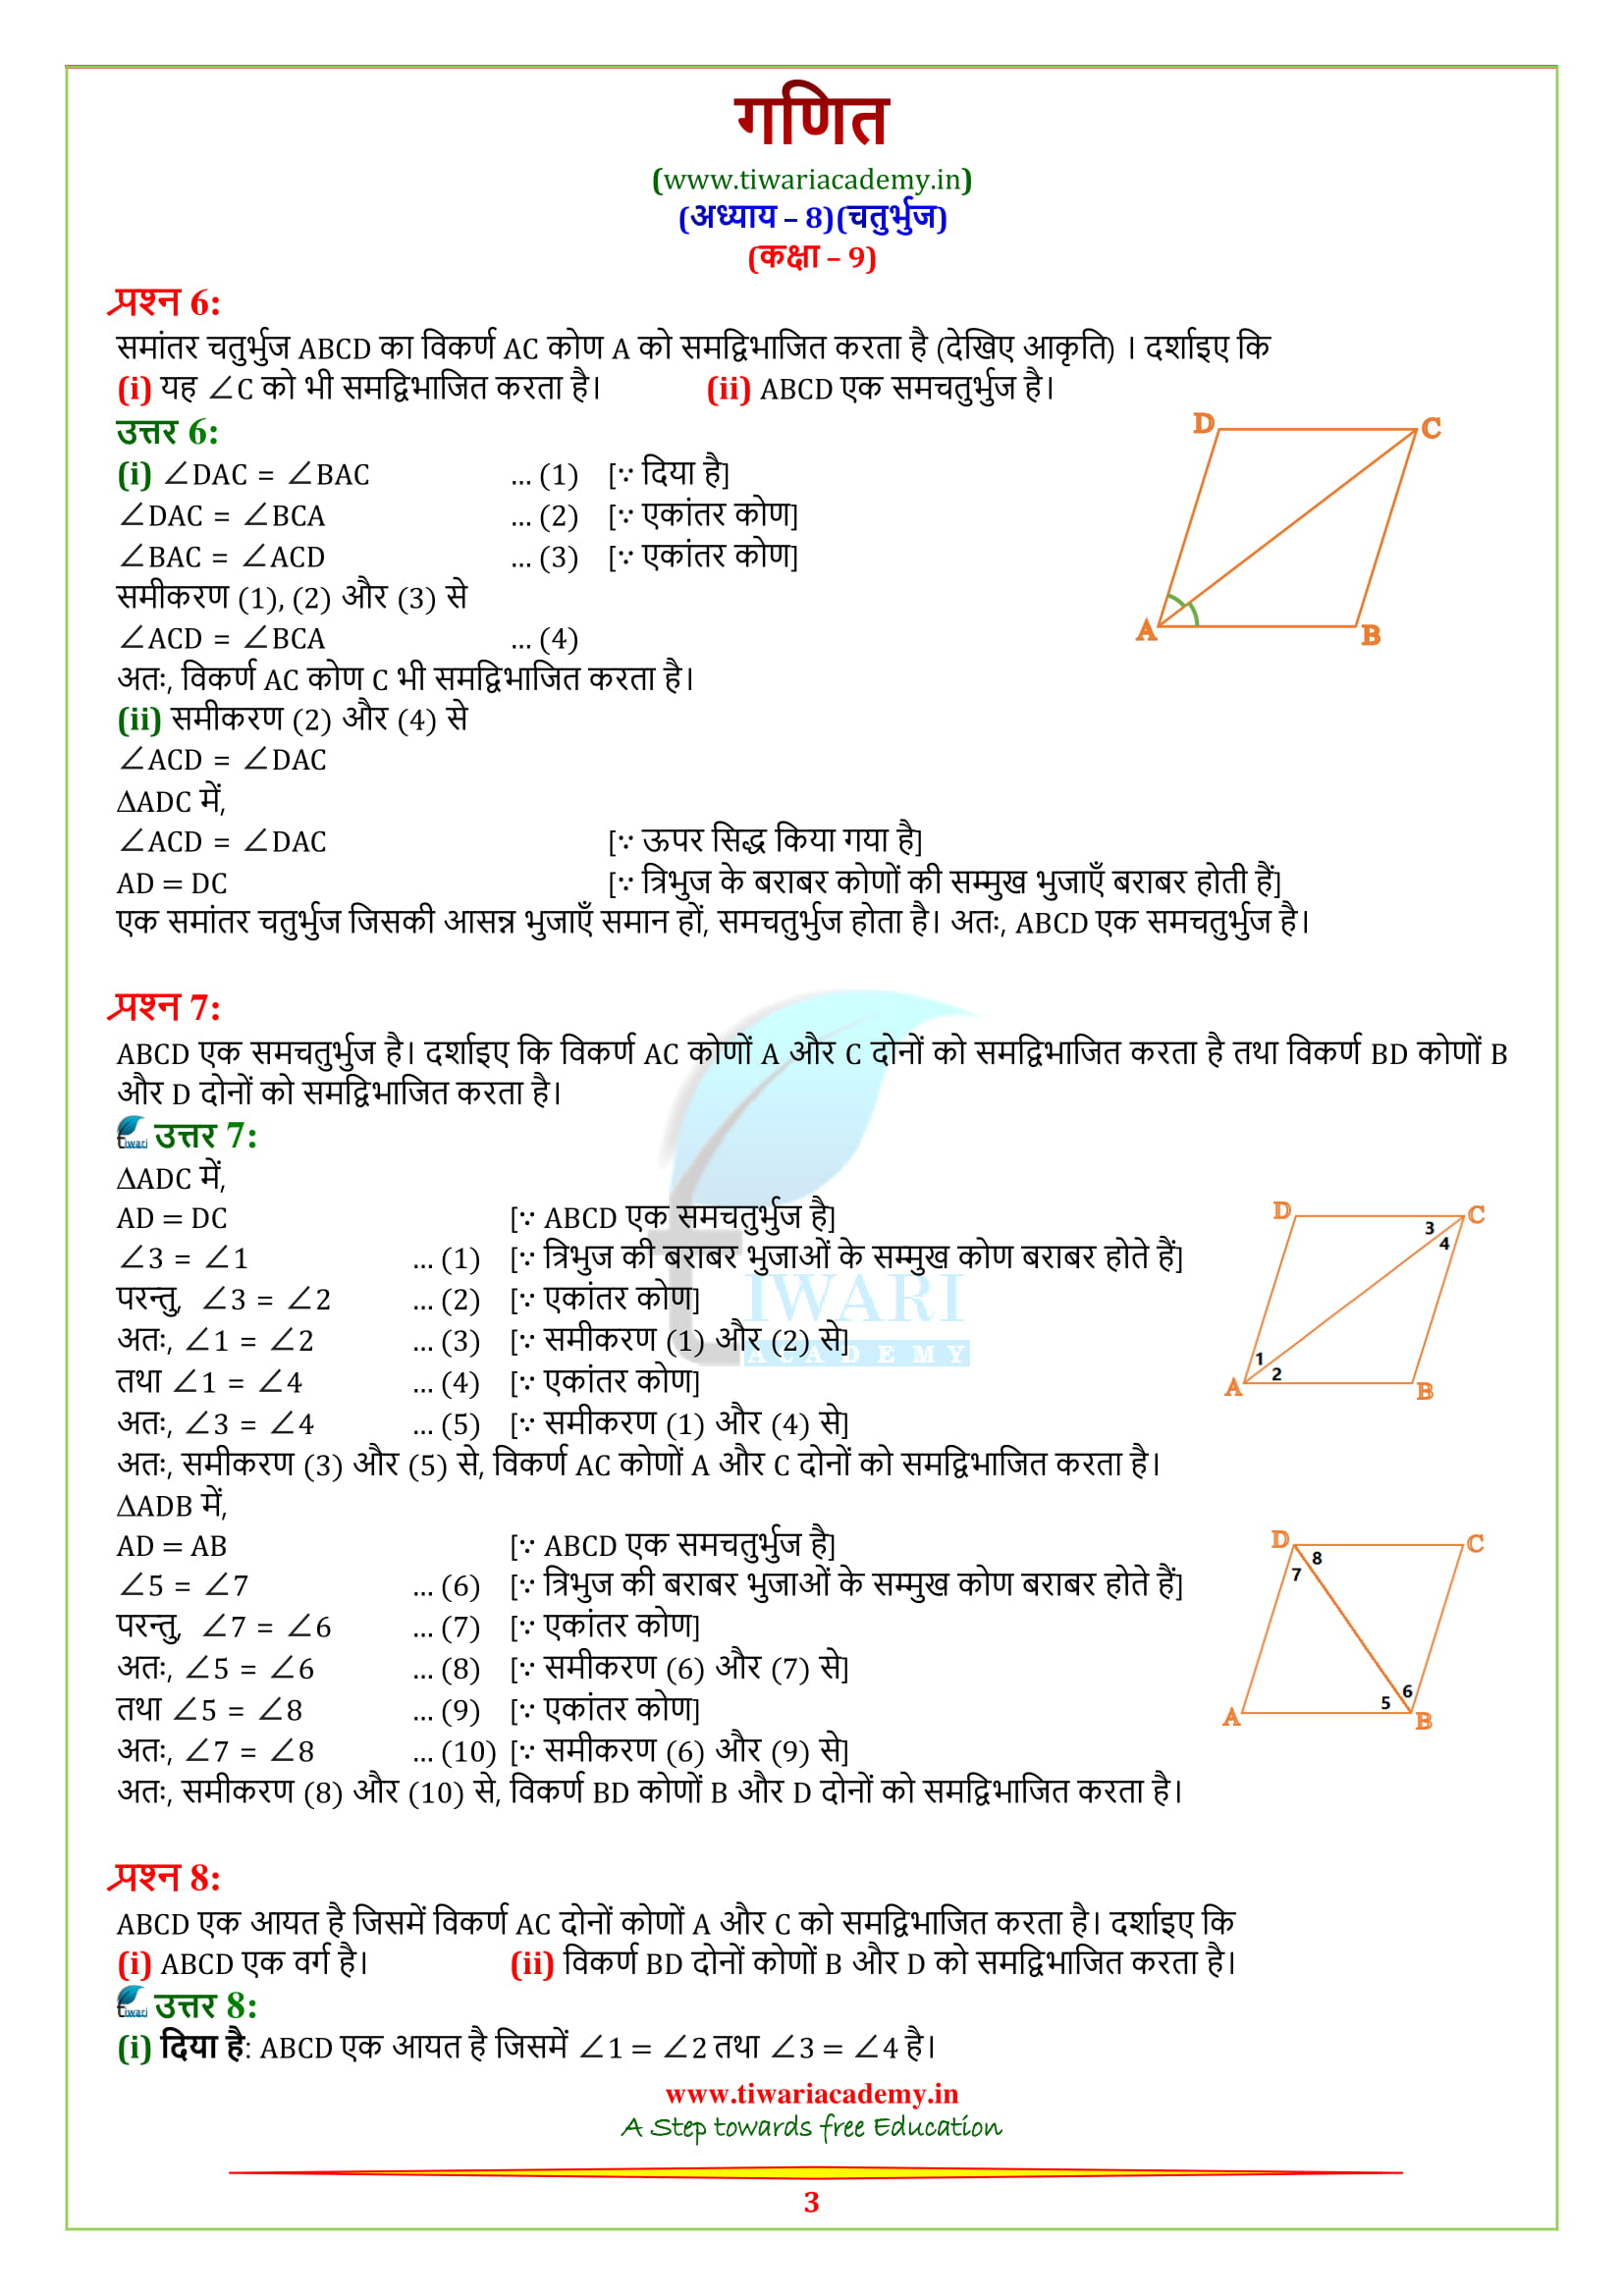 Class 9 Maths Exercise 8.1 solutions in hindi medium